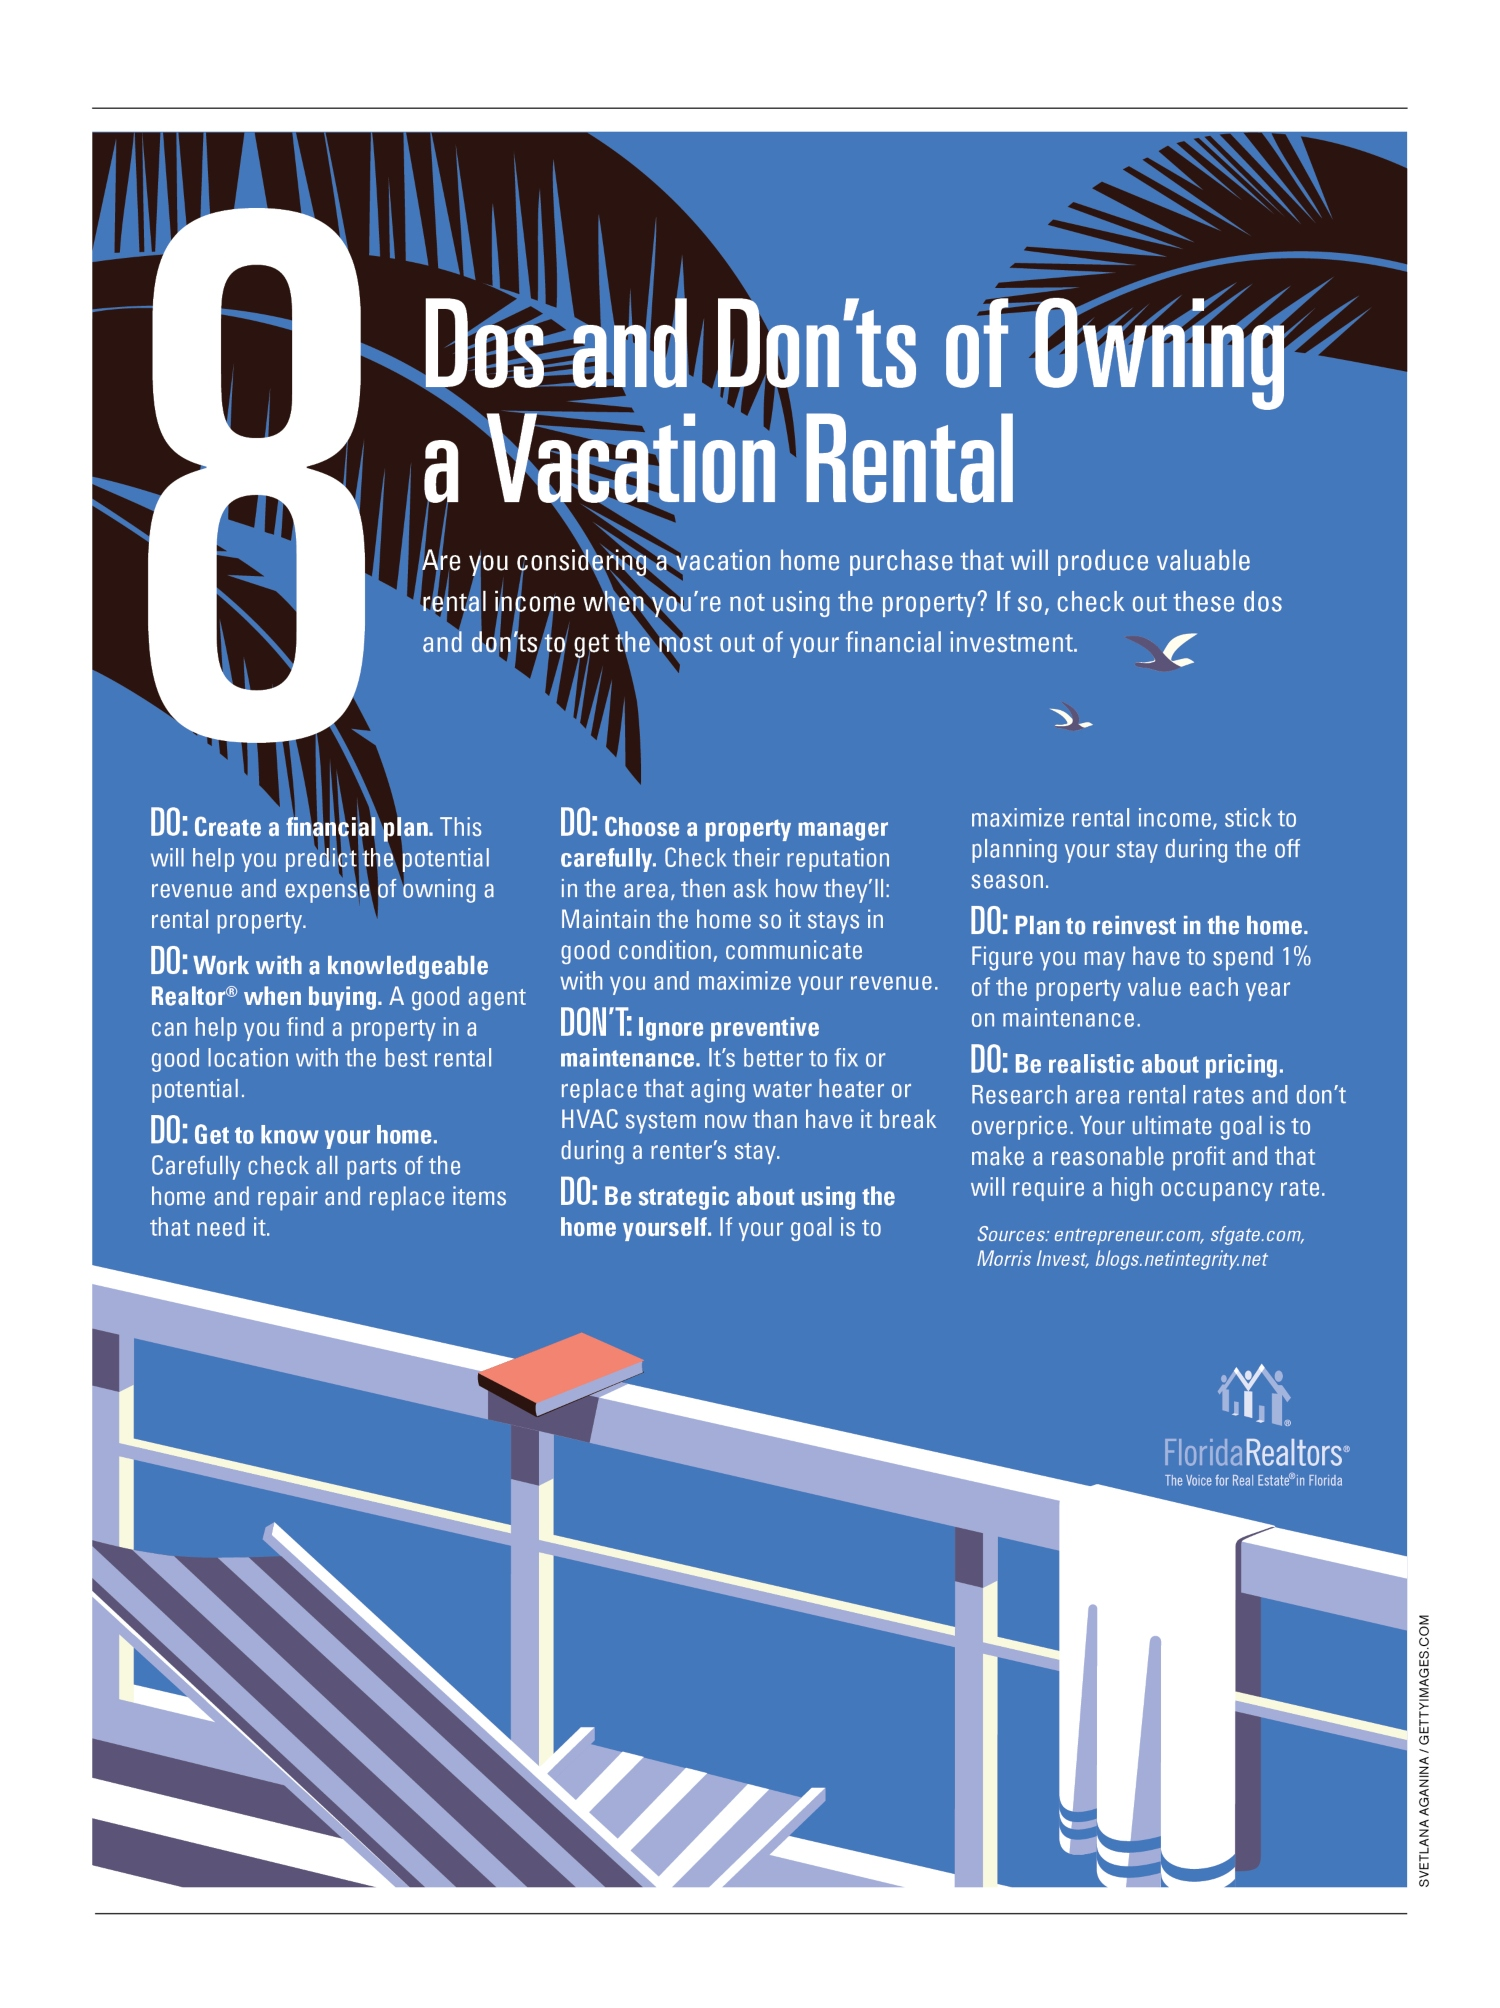 Do's and Don'ts Of Owning A Vacation Rental